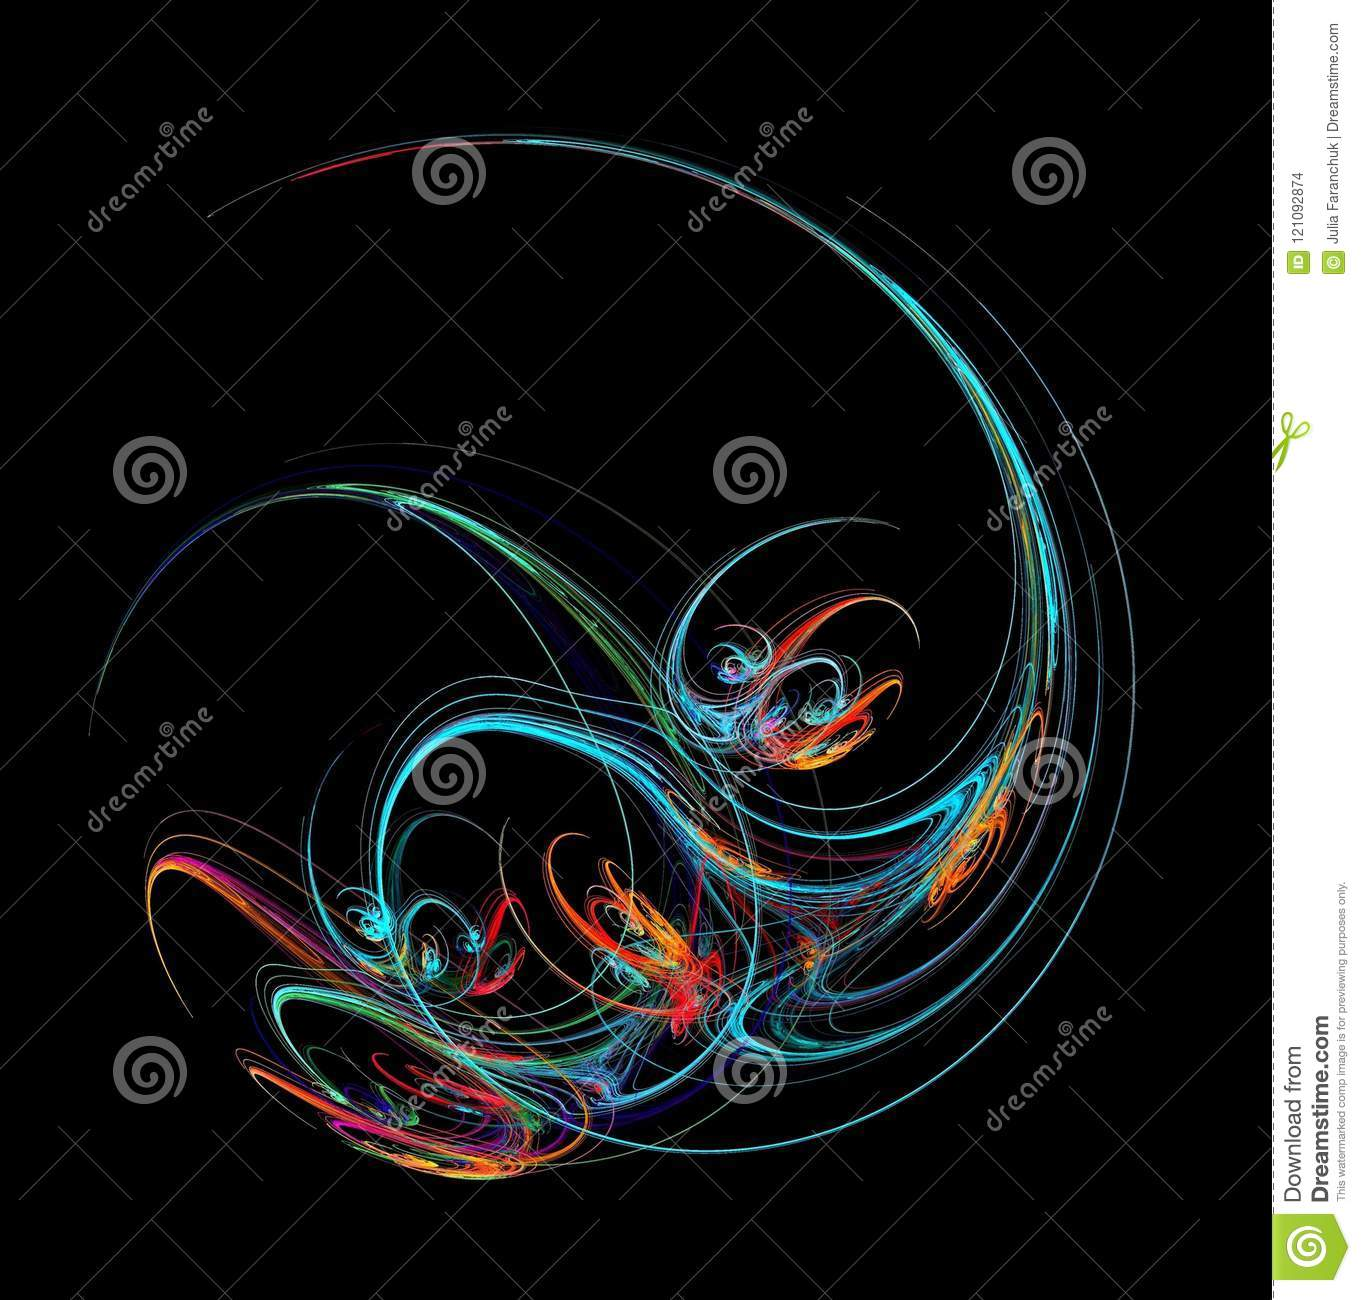 Fractal Abstraction A Glowing Spiral Figure A Symbol Of Energy